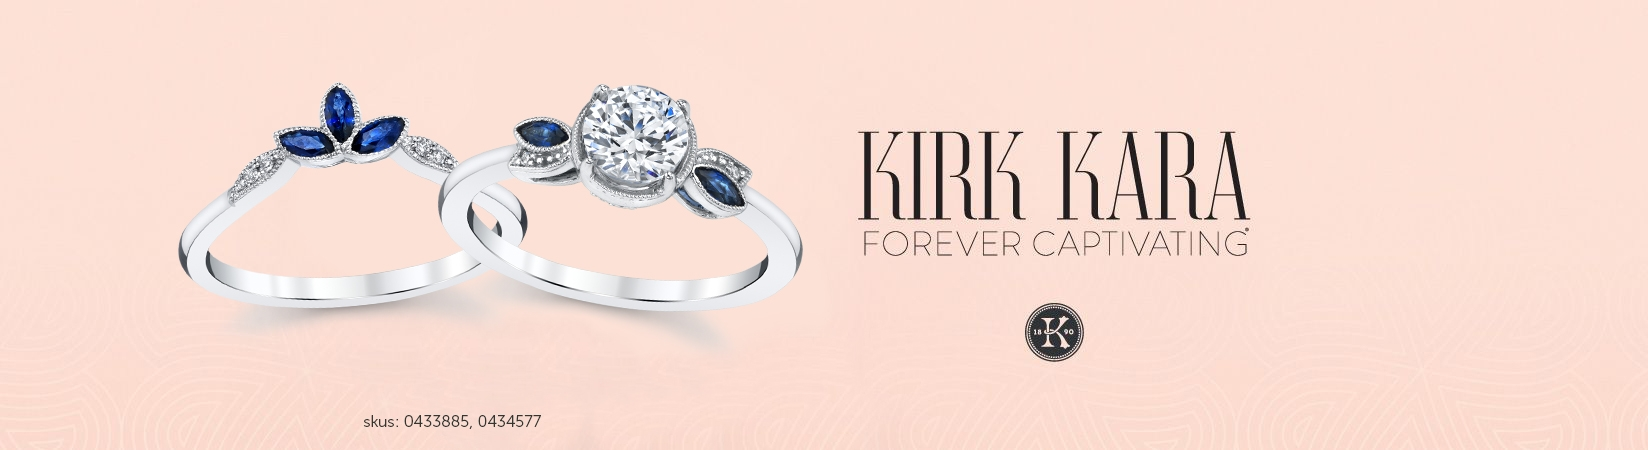 Kirk Kara | Forever Captivating